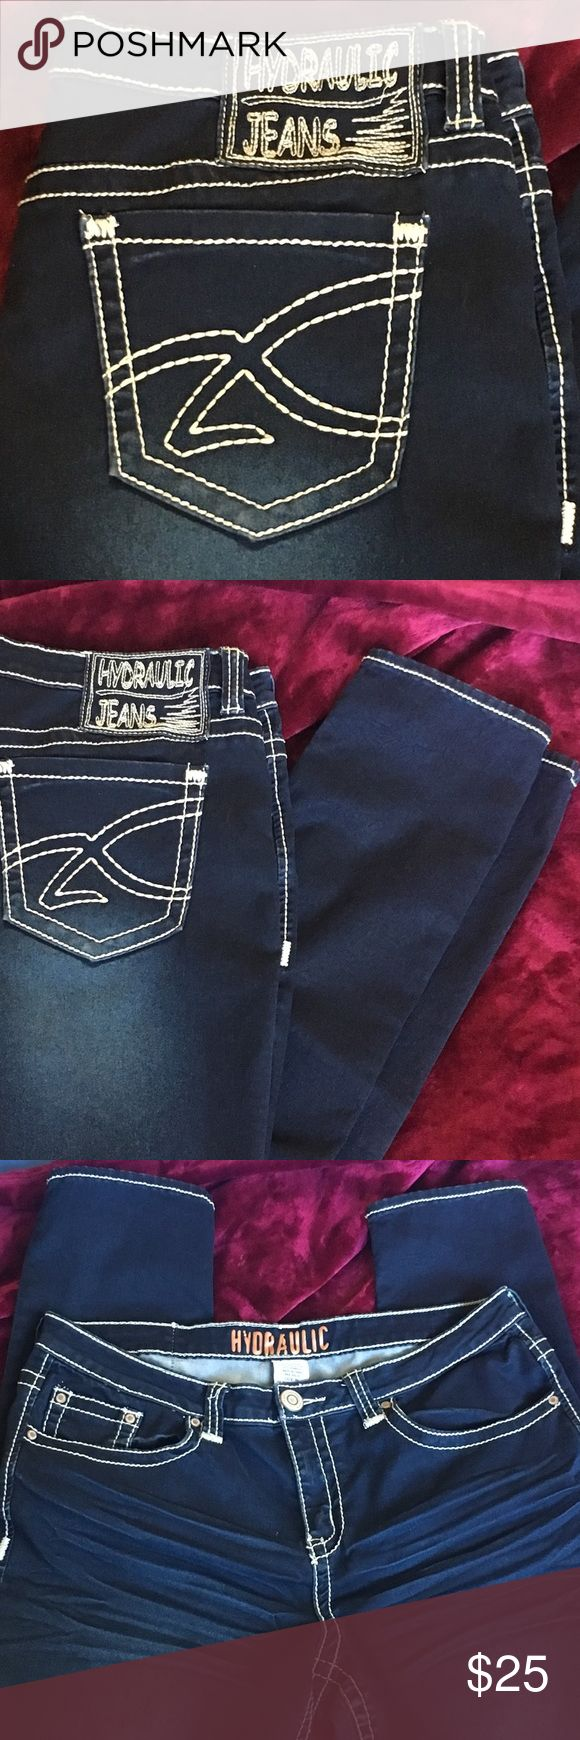 Hydraulic Jeans Straight Leg 16 Hydraulic Jeans Straight Leg 16, Dark Blue with Bright Stitching, Stretchy Comfortable! Great Condition. Hydraulic Jeans Straight Leg